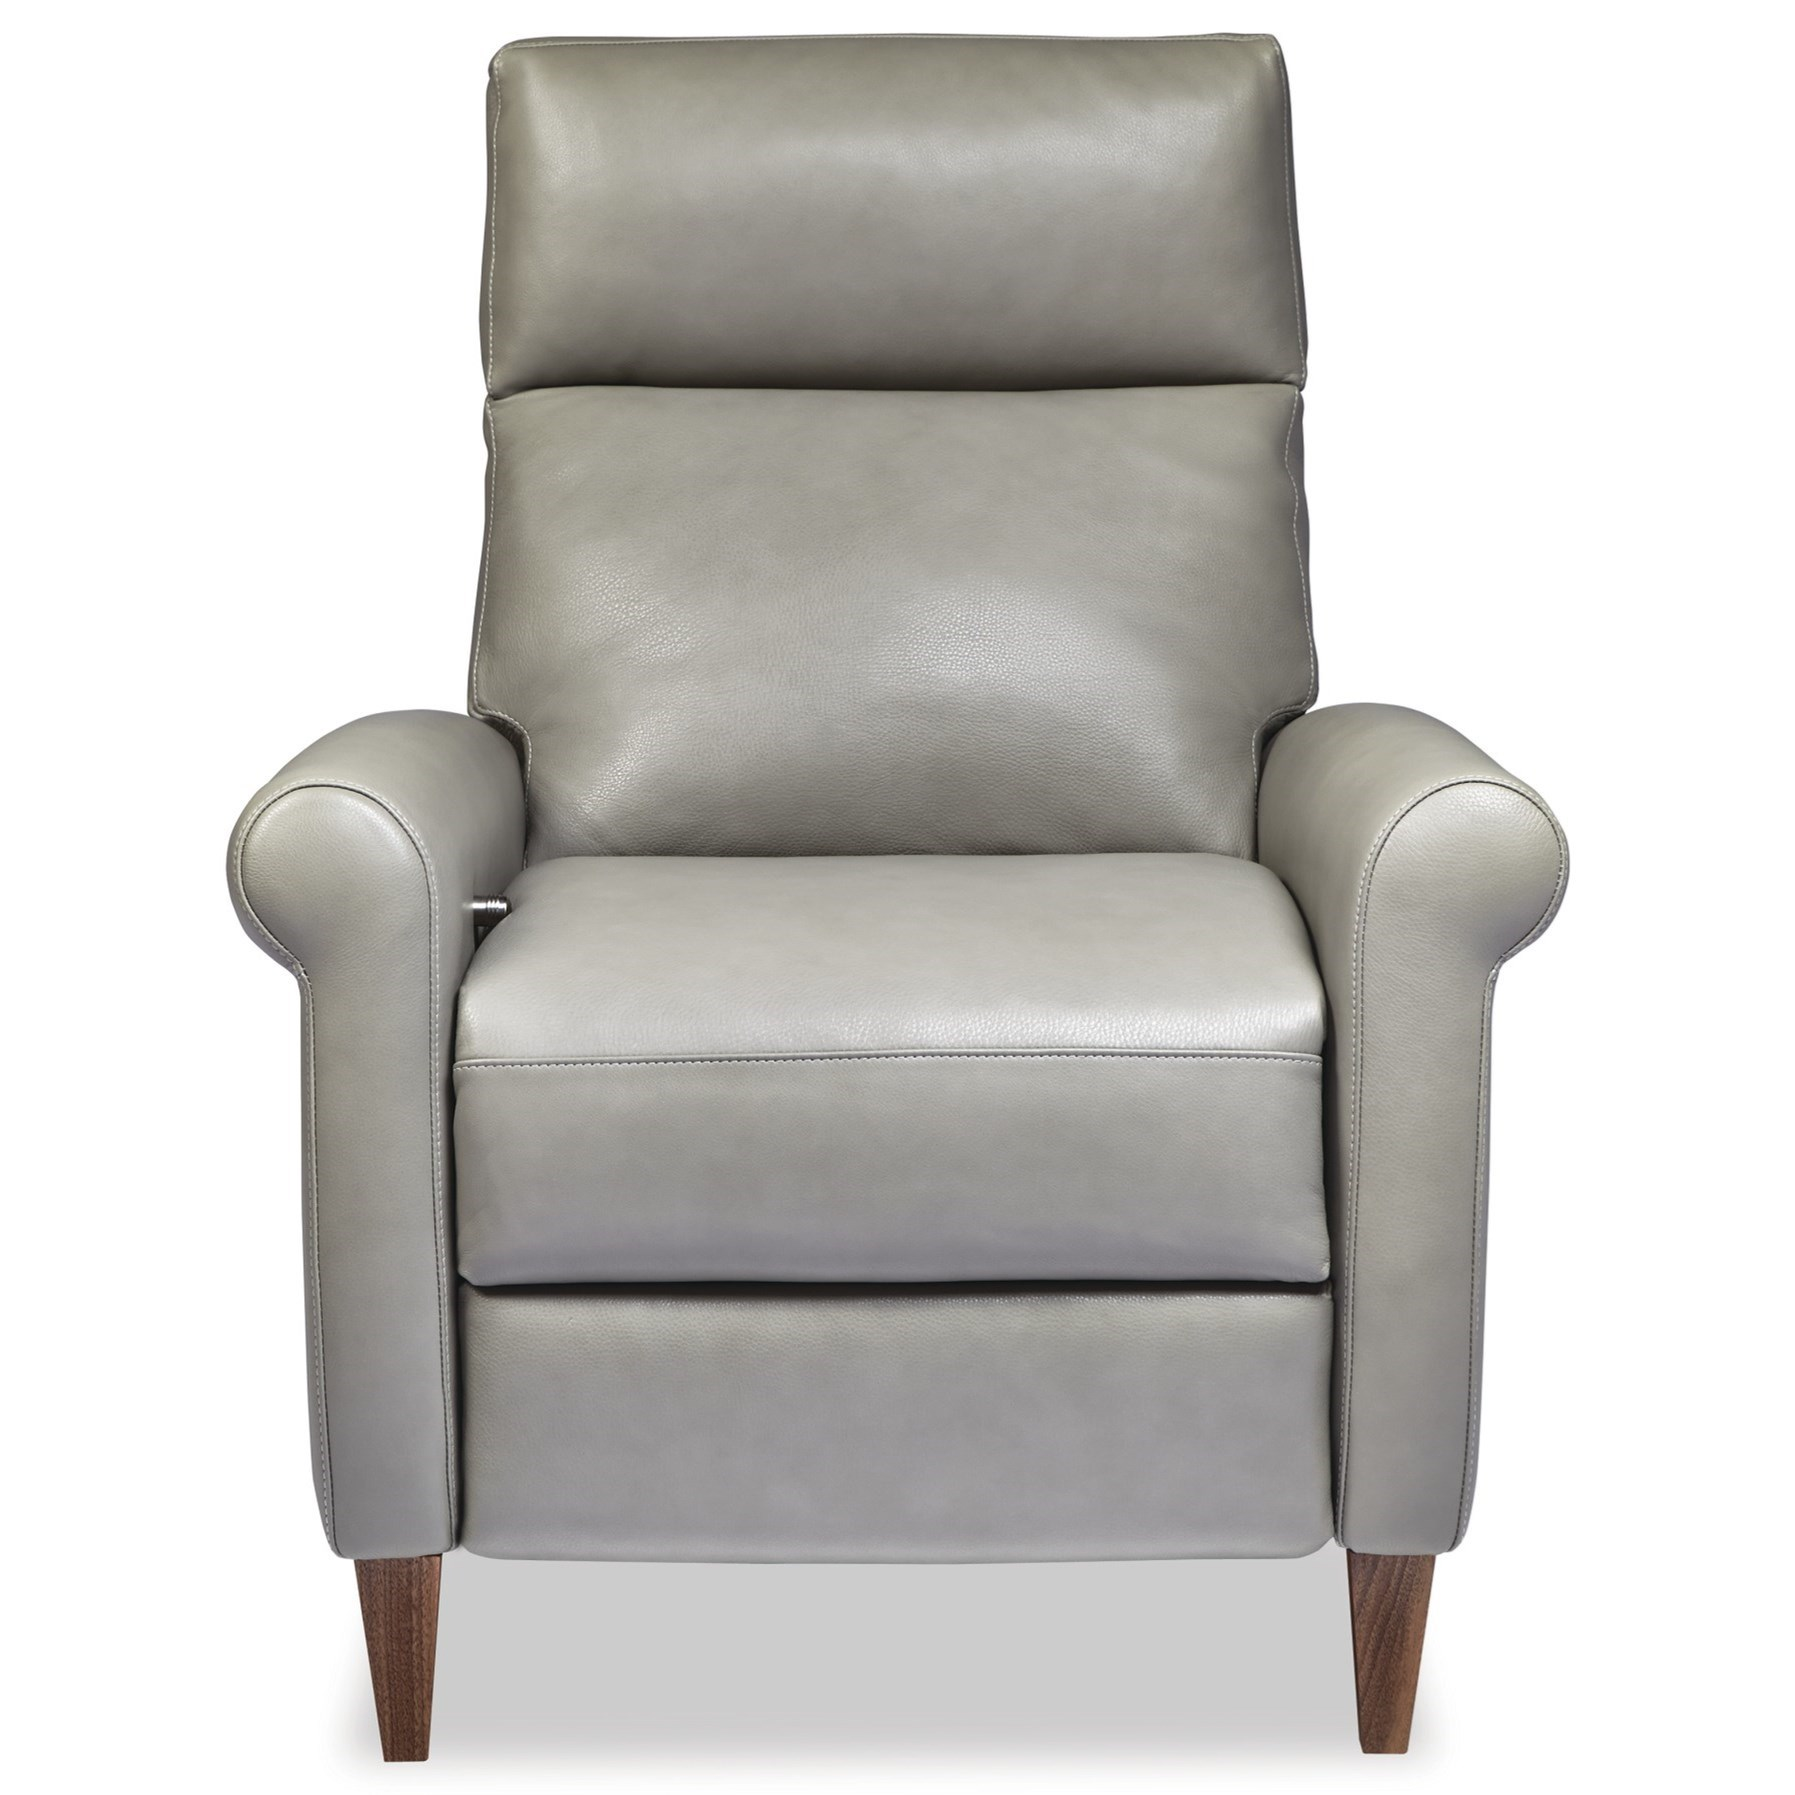 Adley Comfort Recliner by American Leather at Sprintz Furniture